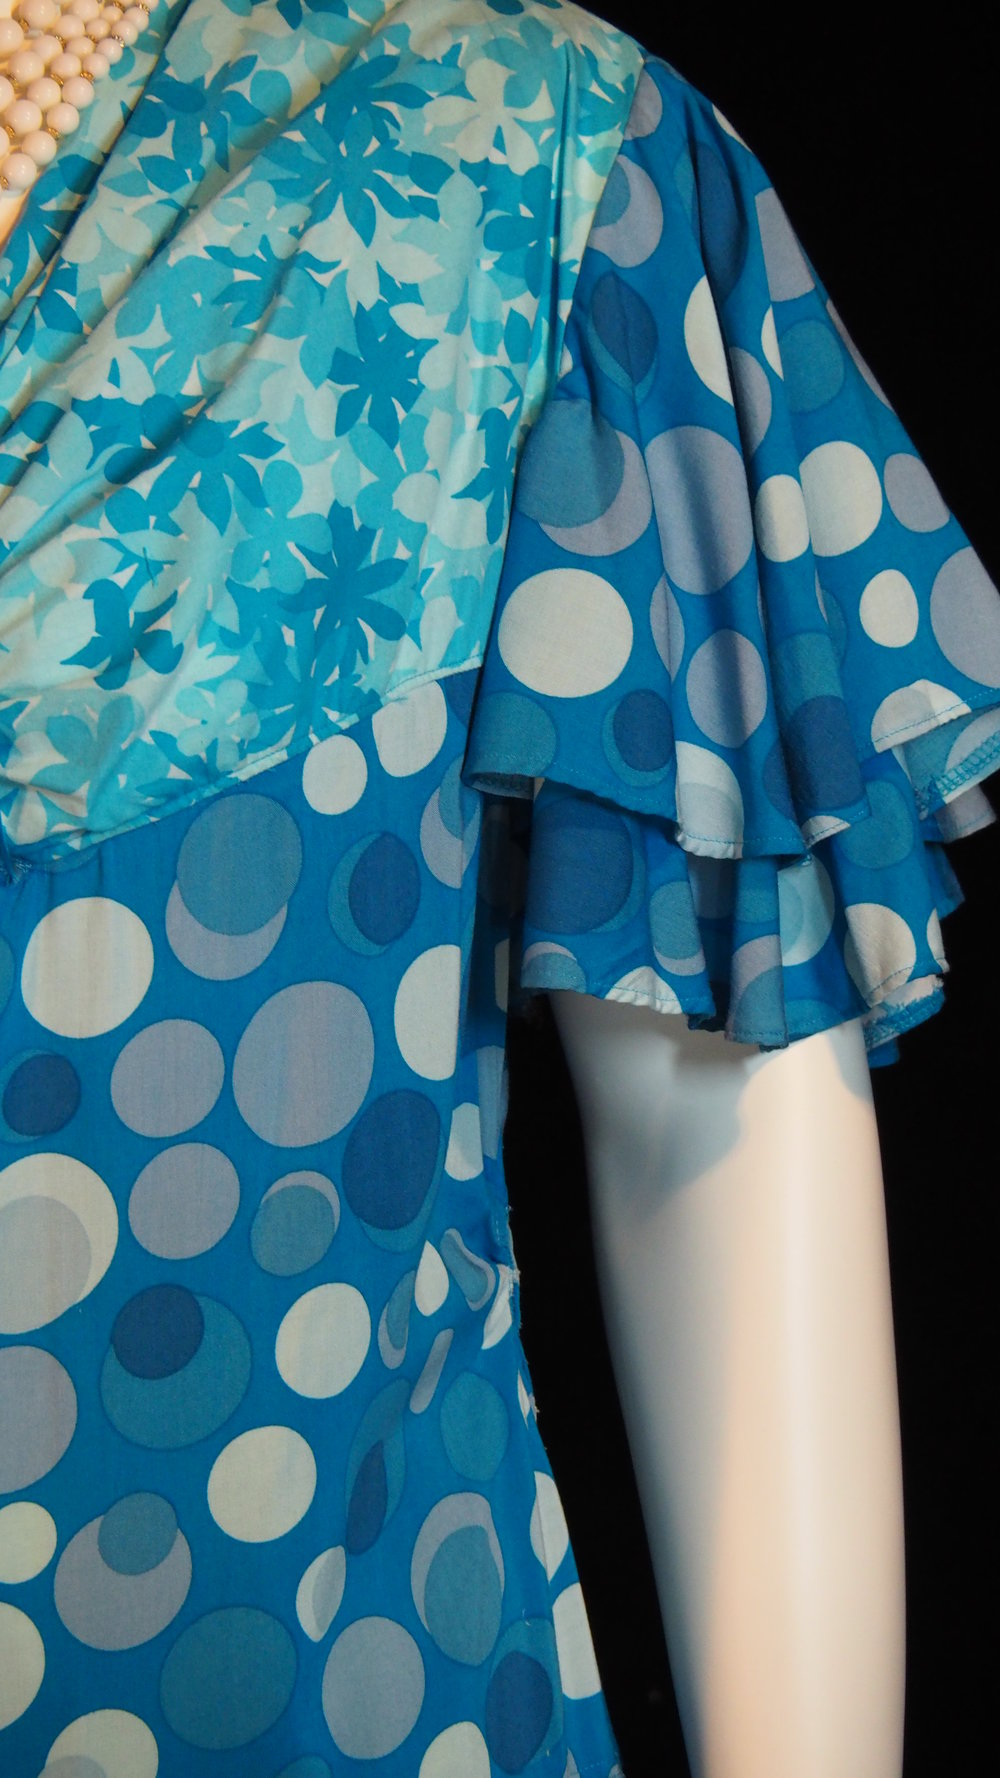 - Teal Polka Dot Dress